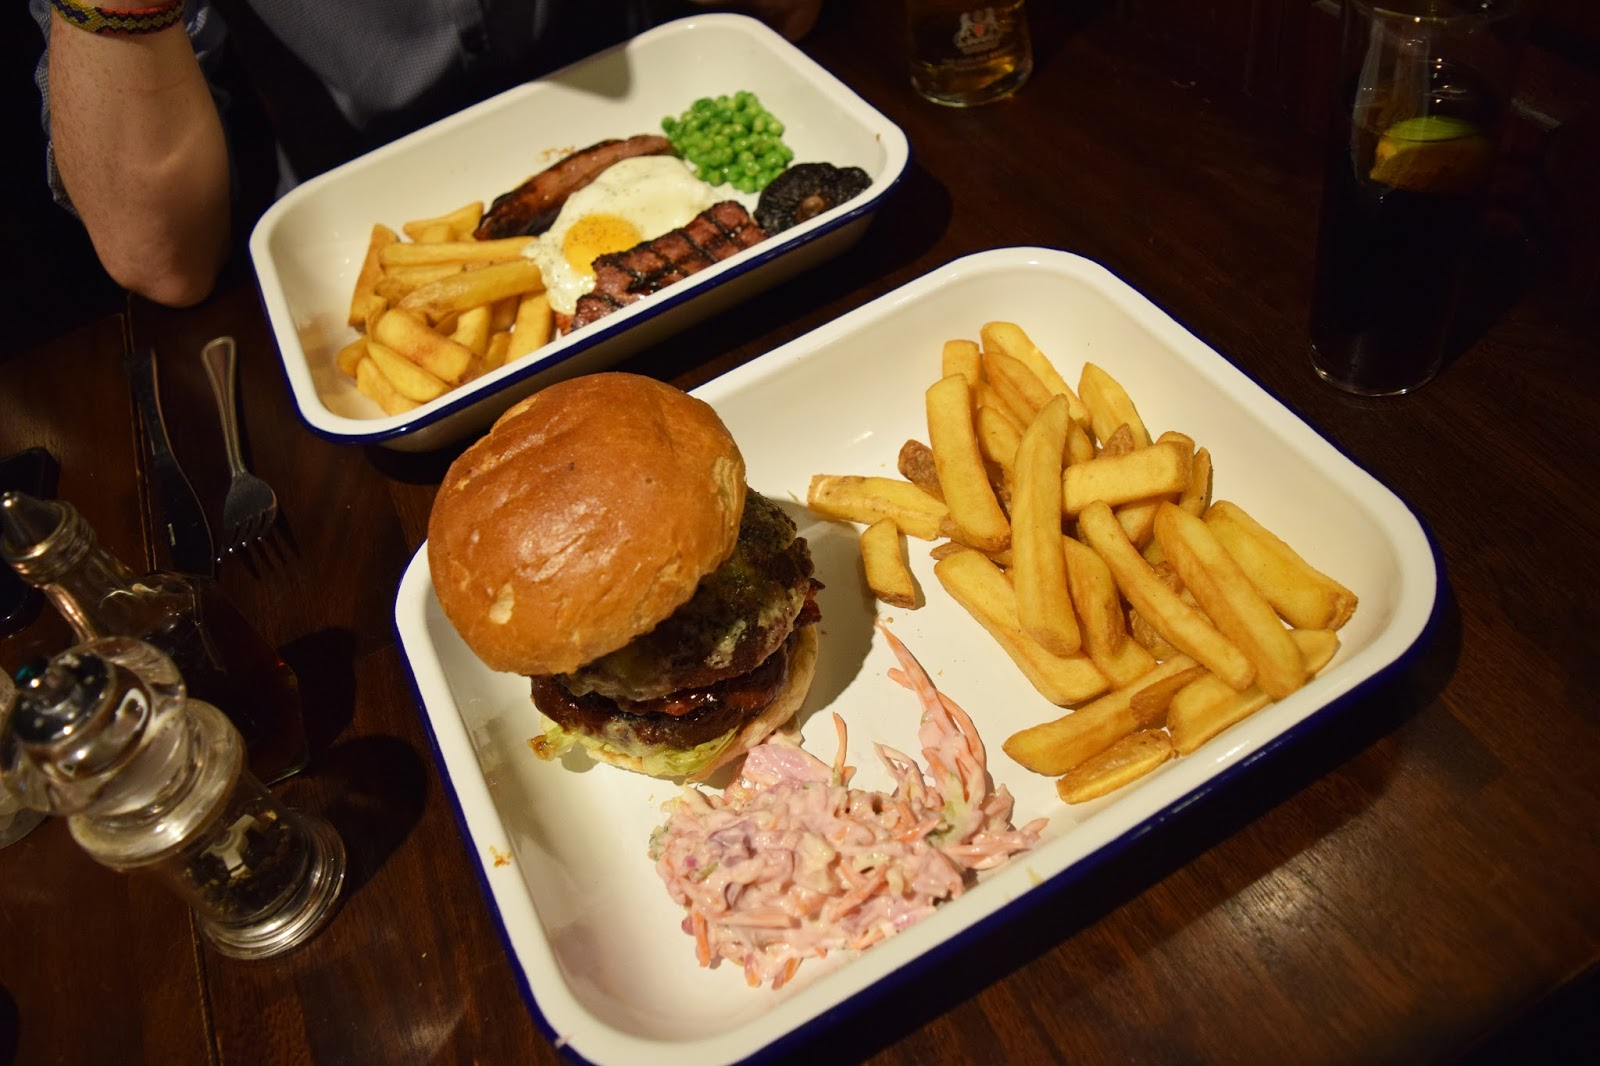 Our meals at Baccus bar